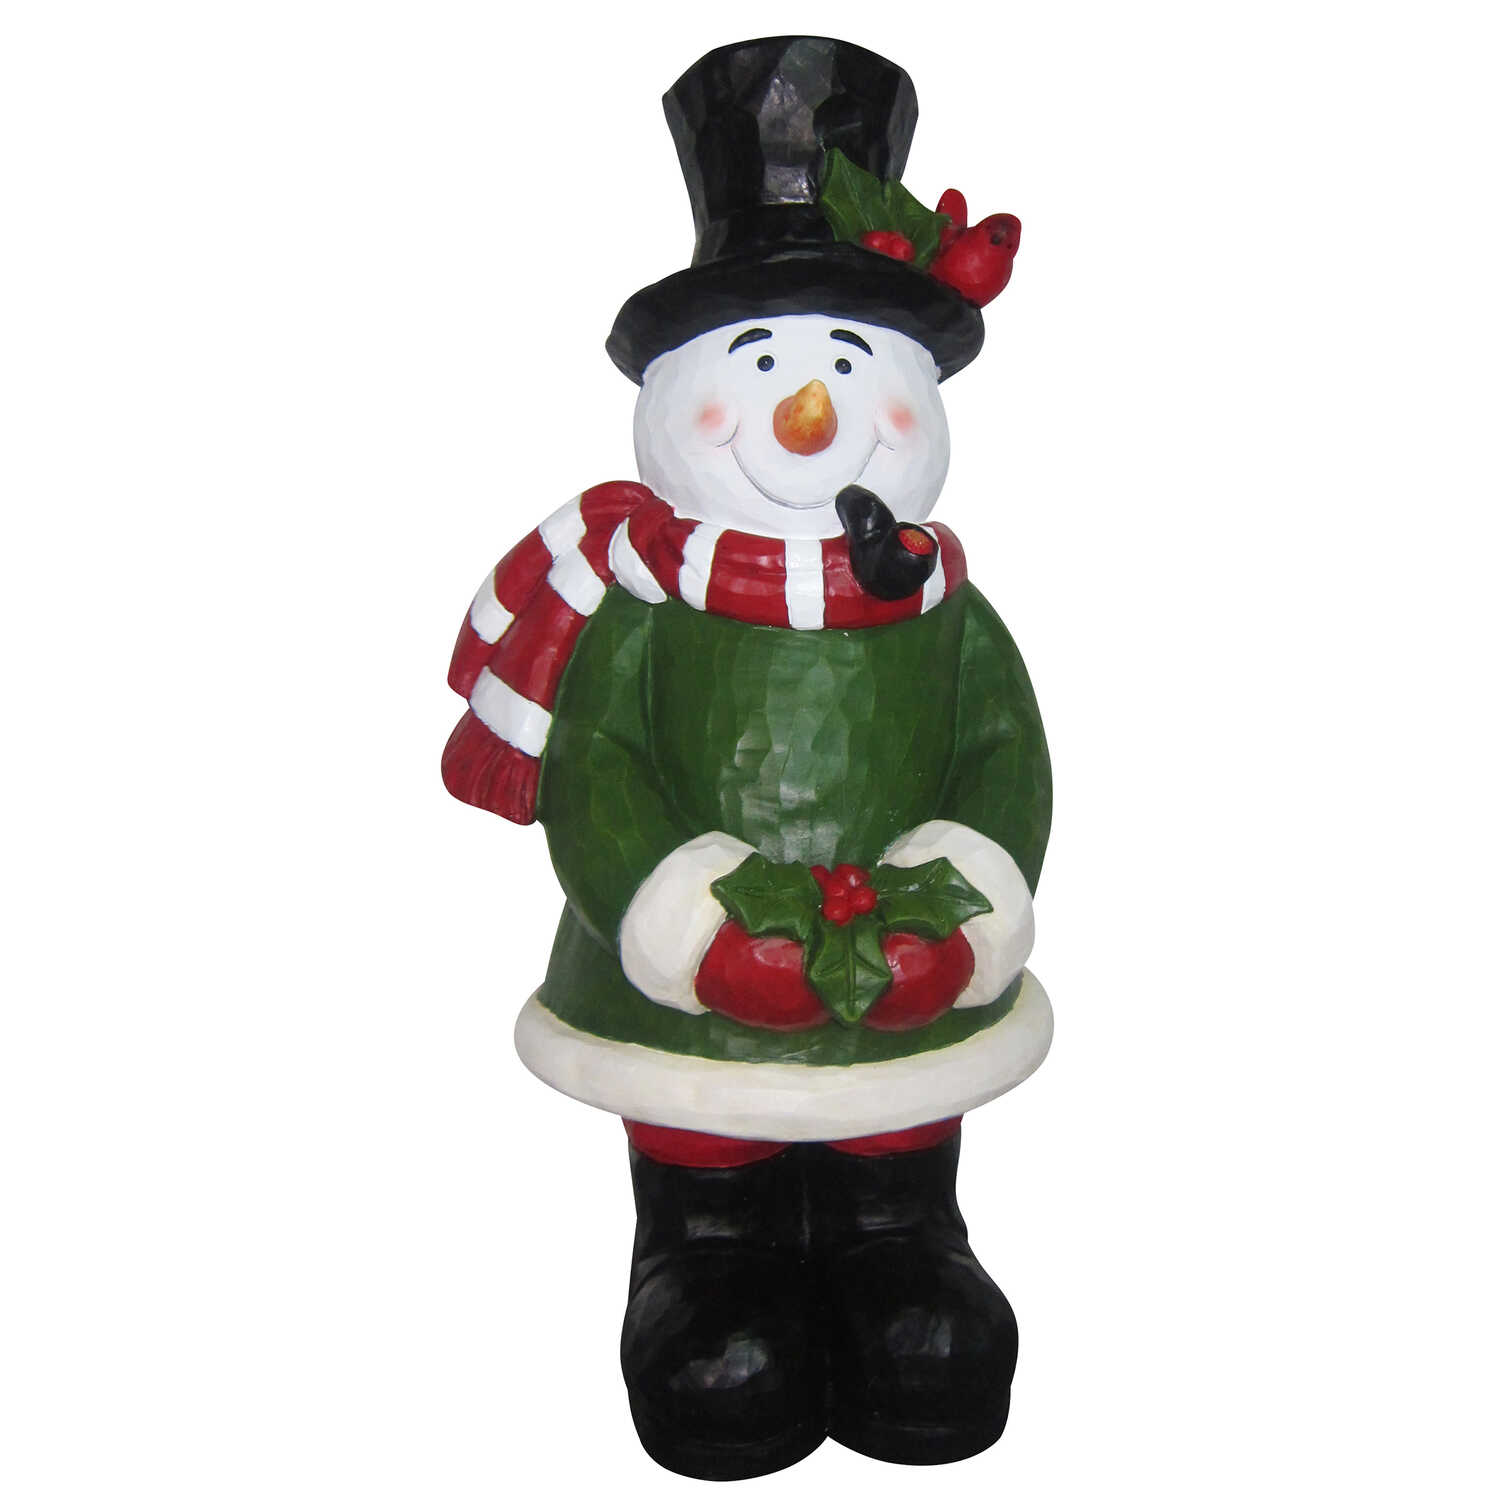 Alpine  Snowman Statue  Christmas Decoration  Multicolored  Resin  1 each